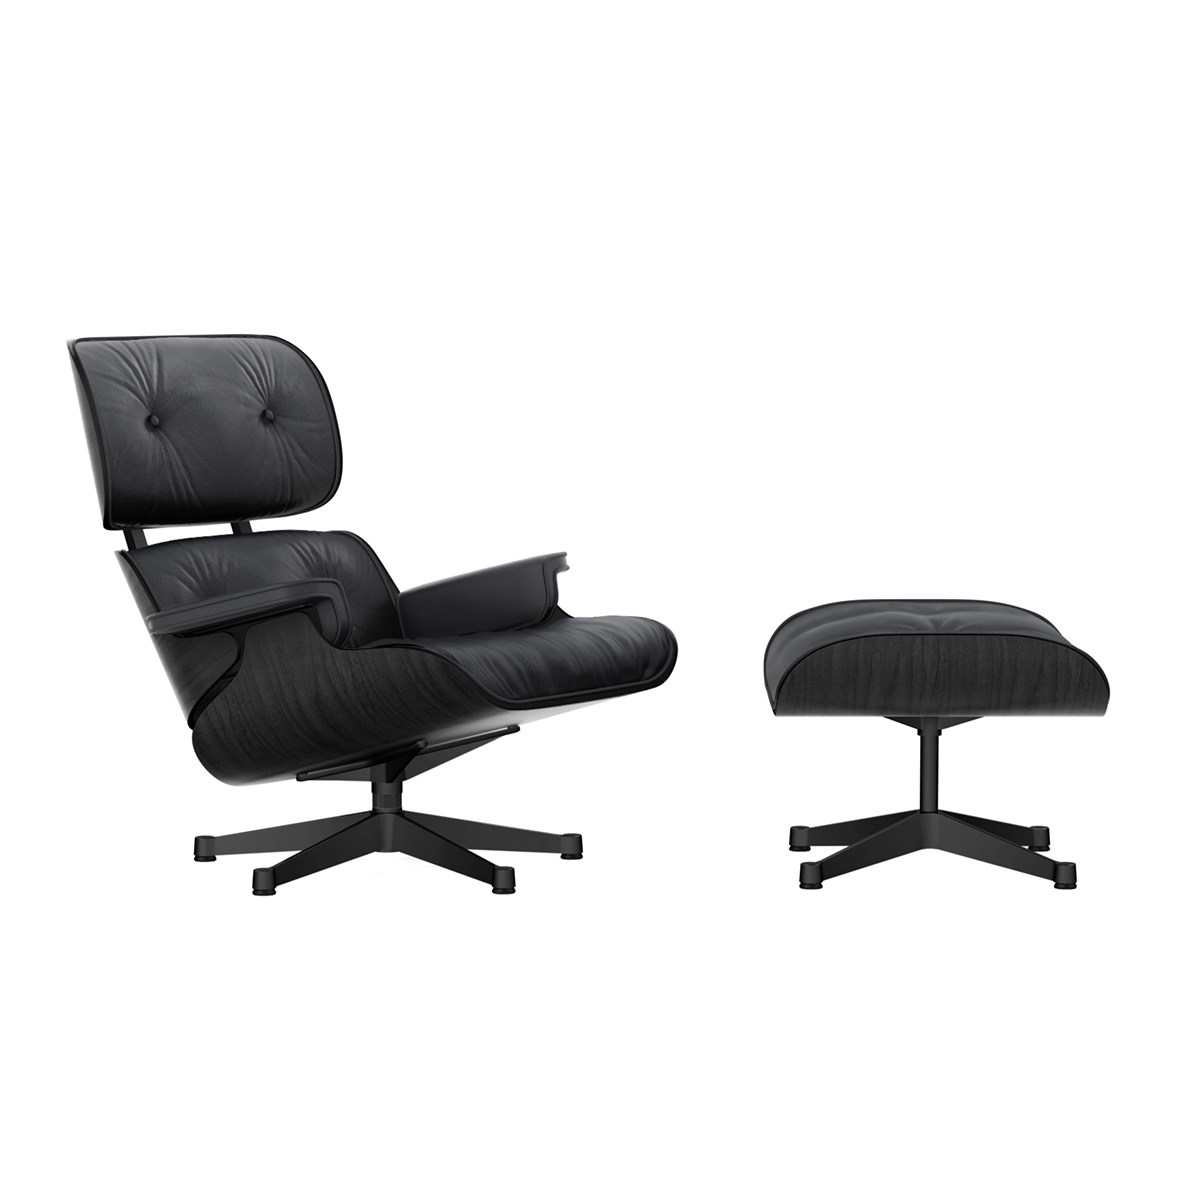 Eames Lounge Chair m/Ottoman Nero/Sort Ask